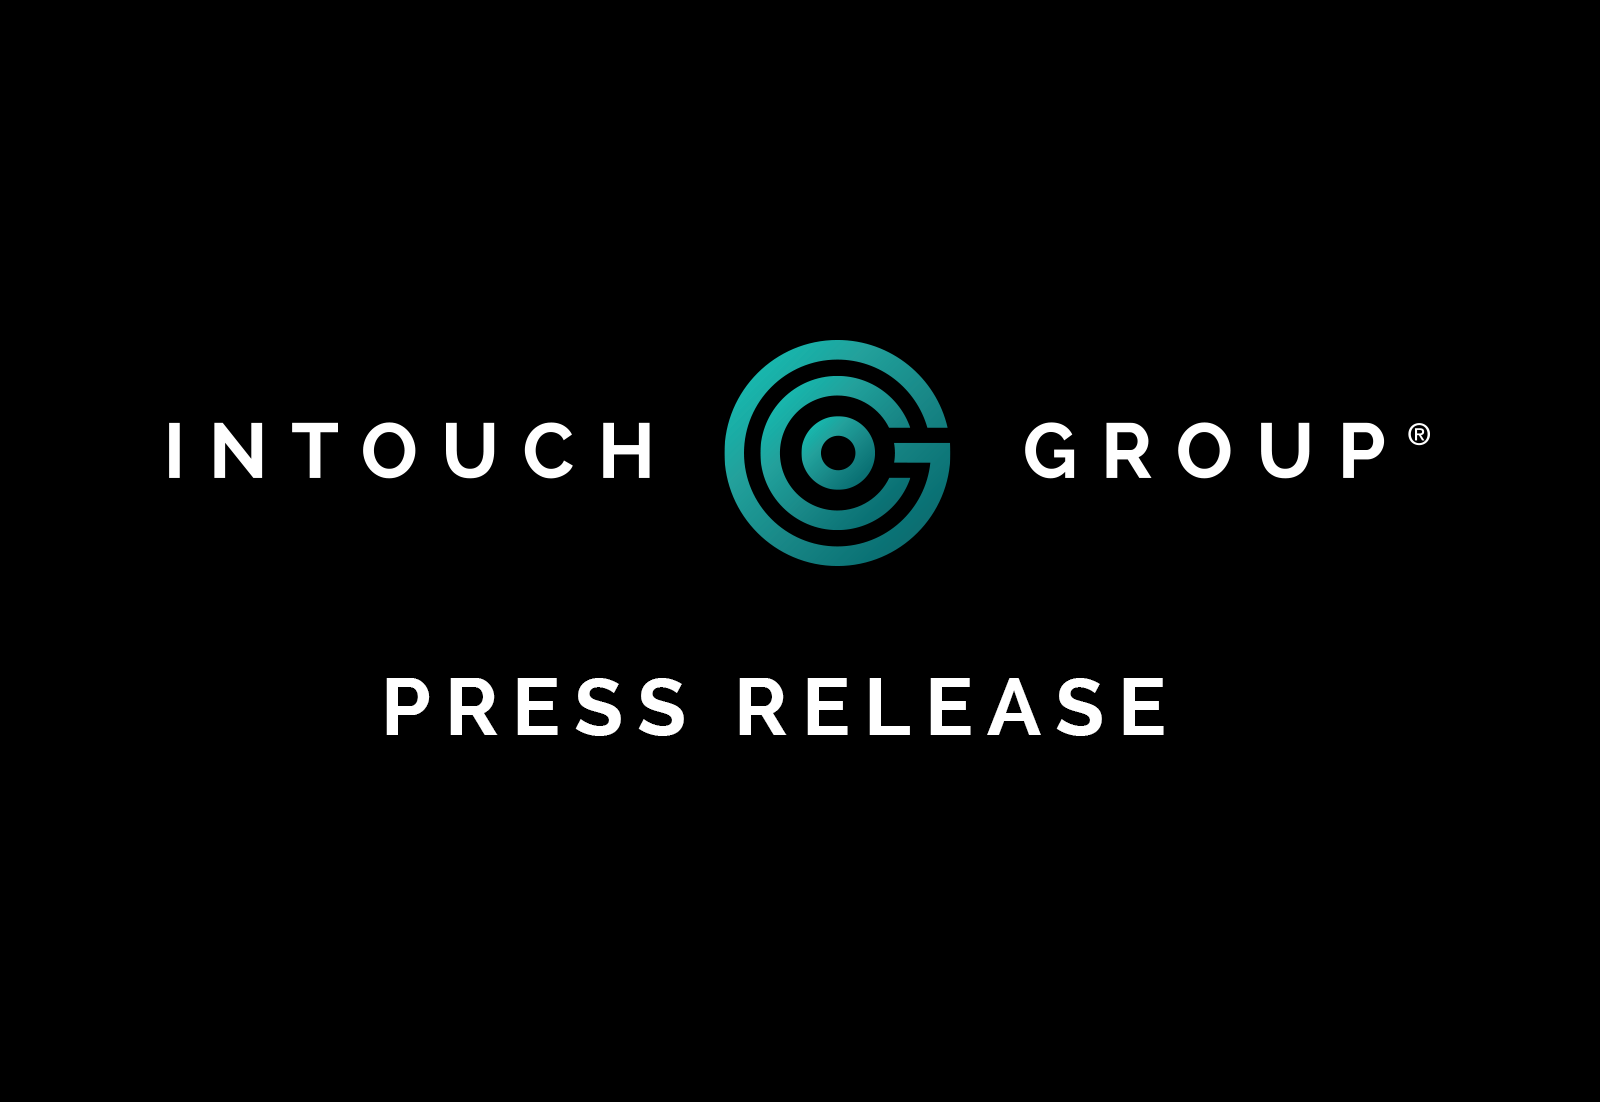 DHC Group and Intouch Group Publish Whitepaper on Effectively Engaging Audiences in the COVID-19 Era